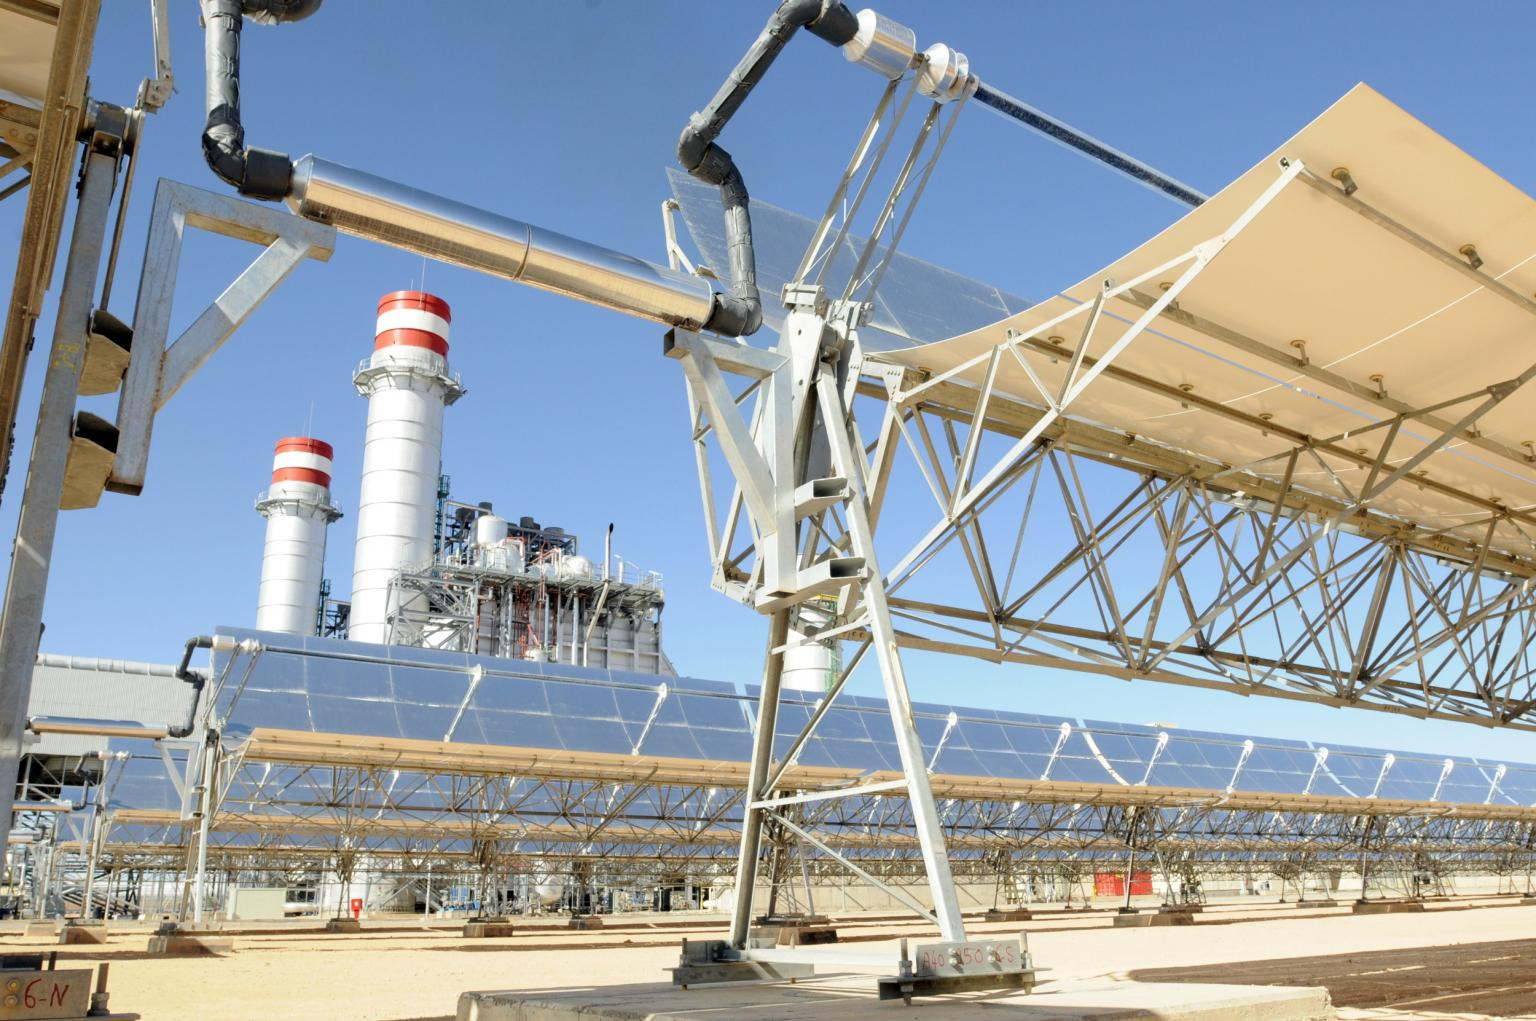 The plan is to deploy 2,000MW of solar power generation capacity by 2020